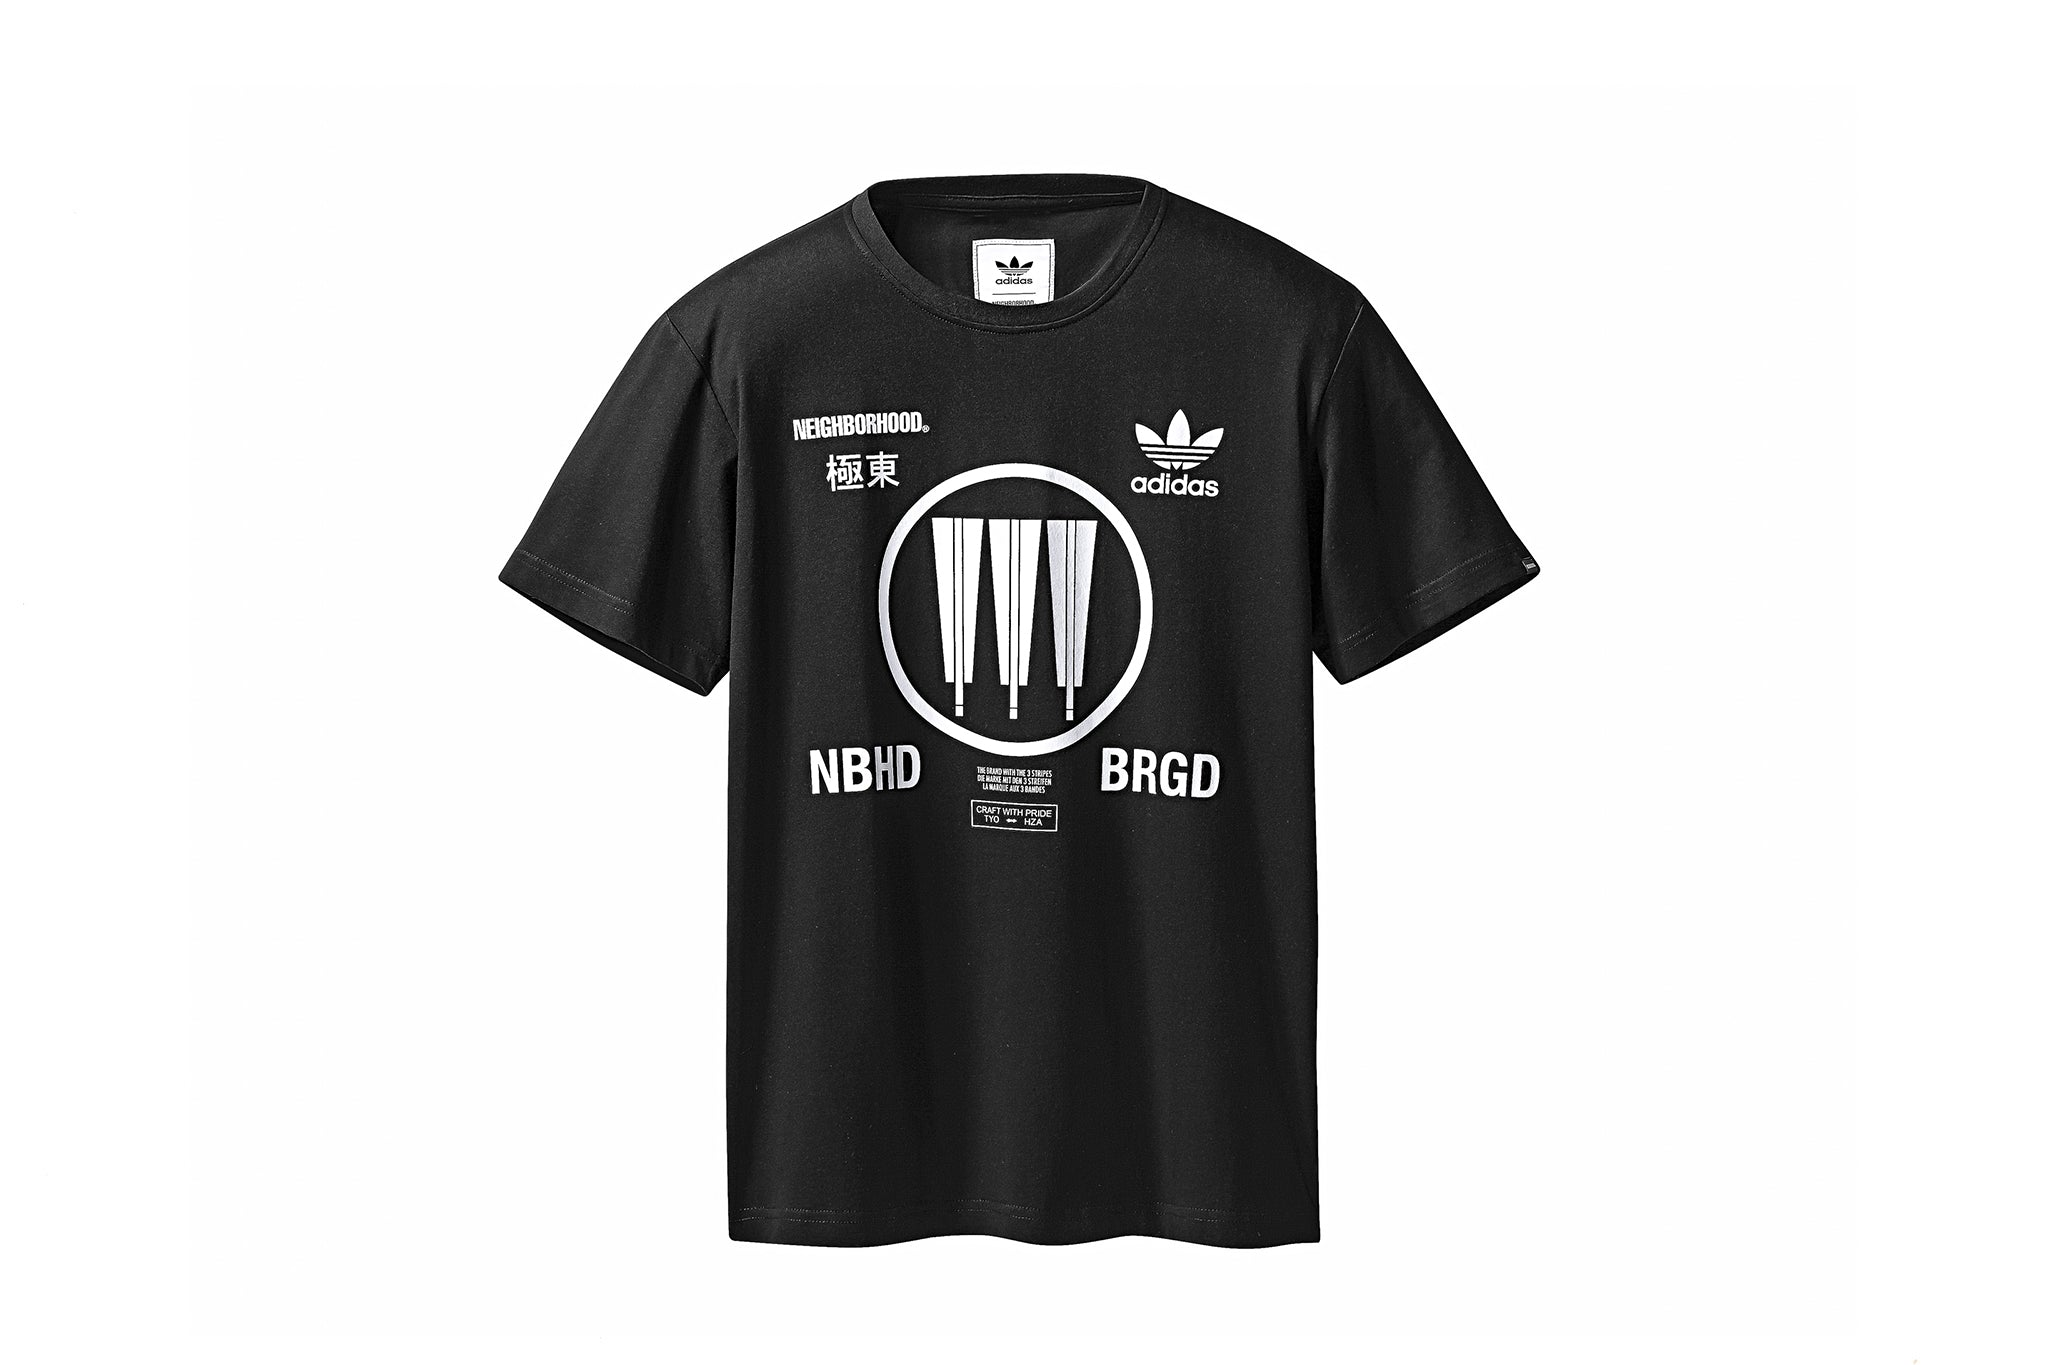 ADIDAS CONSORTIUM X NEIGHBORHOOD LOGO S/S T-SHIRT